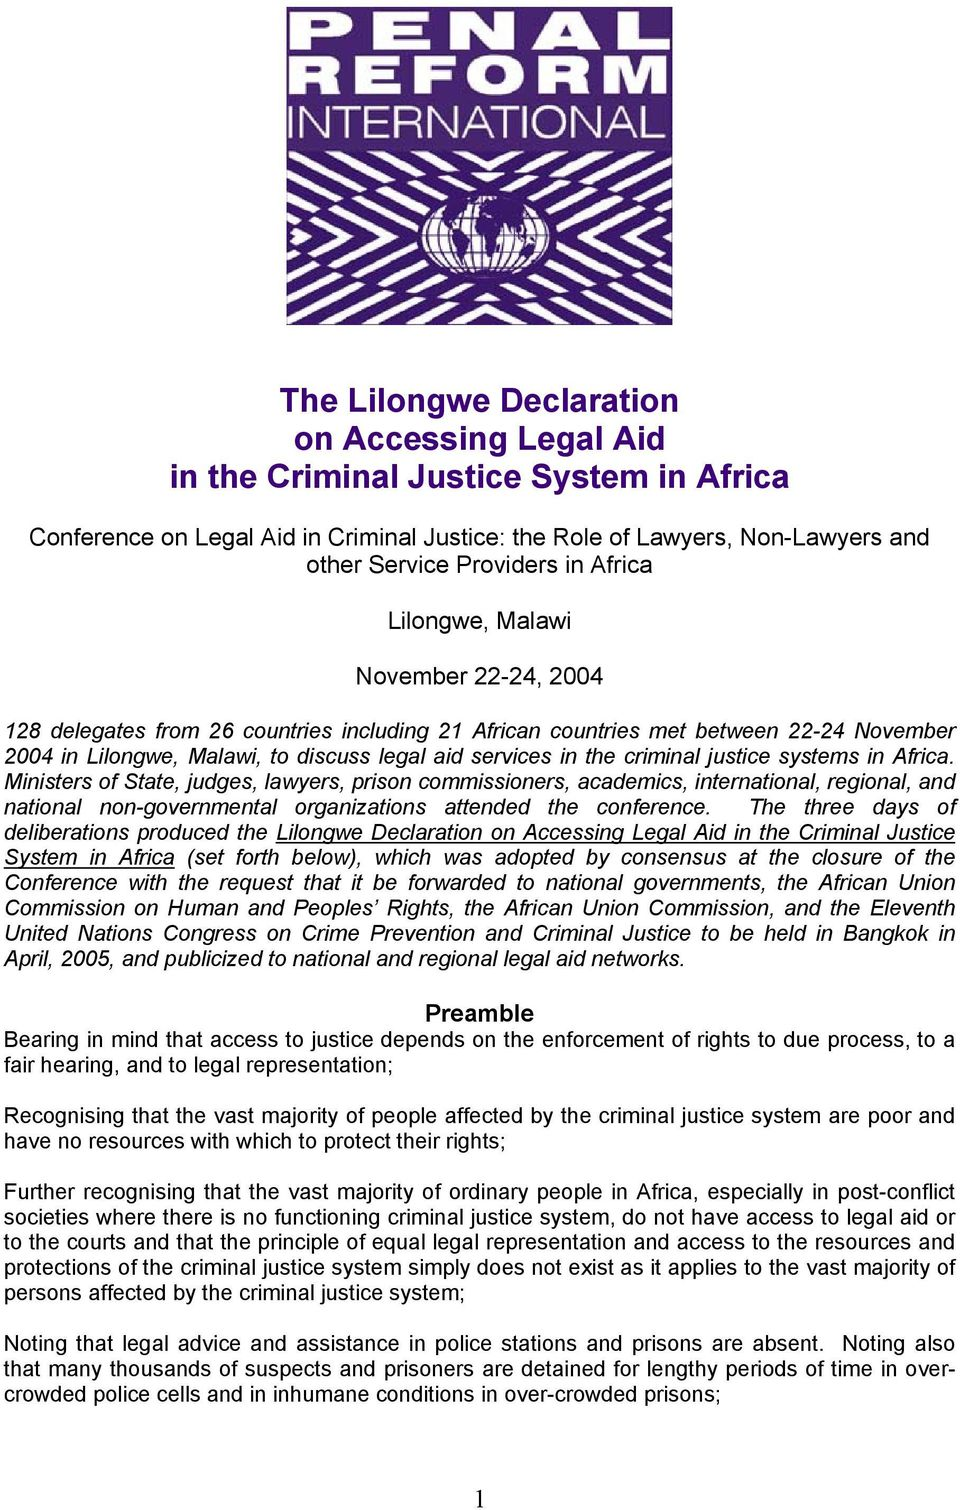 criminal justice systems in Africa. Ministers of State, judges, lawyers, prison commissioners, academics, international, regional, and national non-governmental organizations attended the conference.